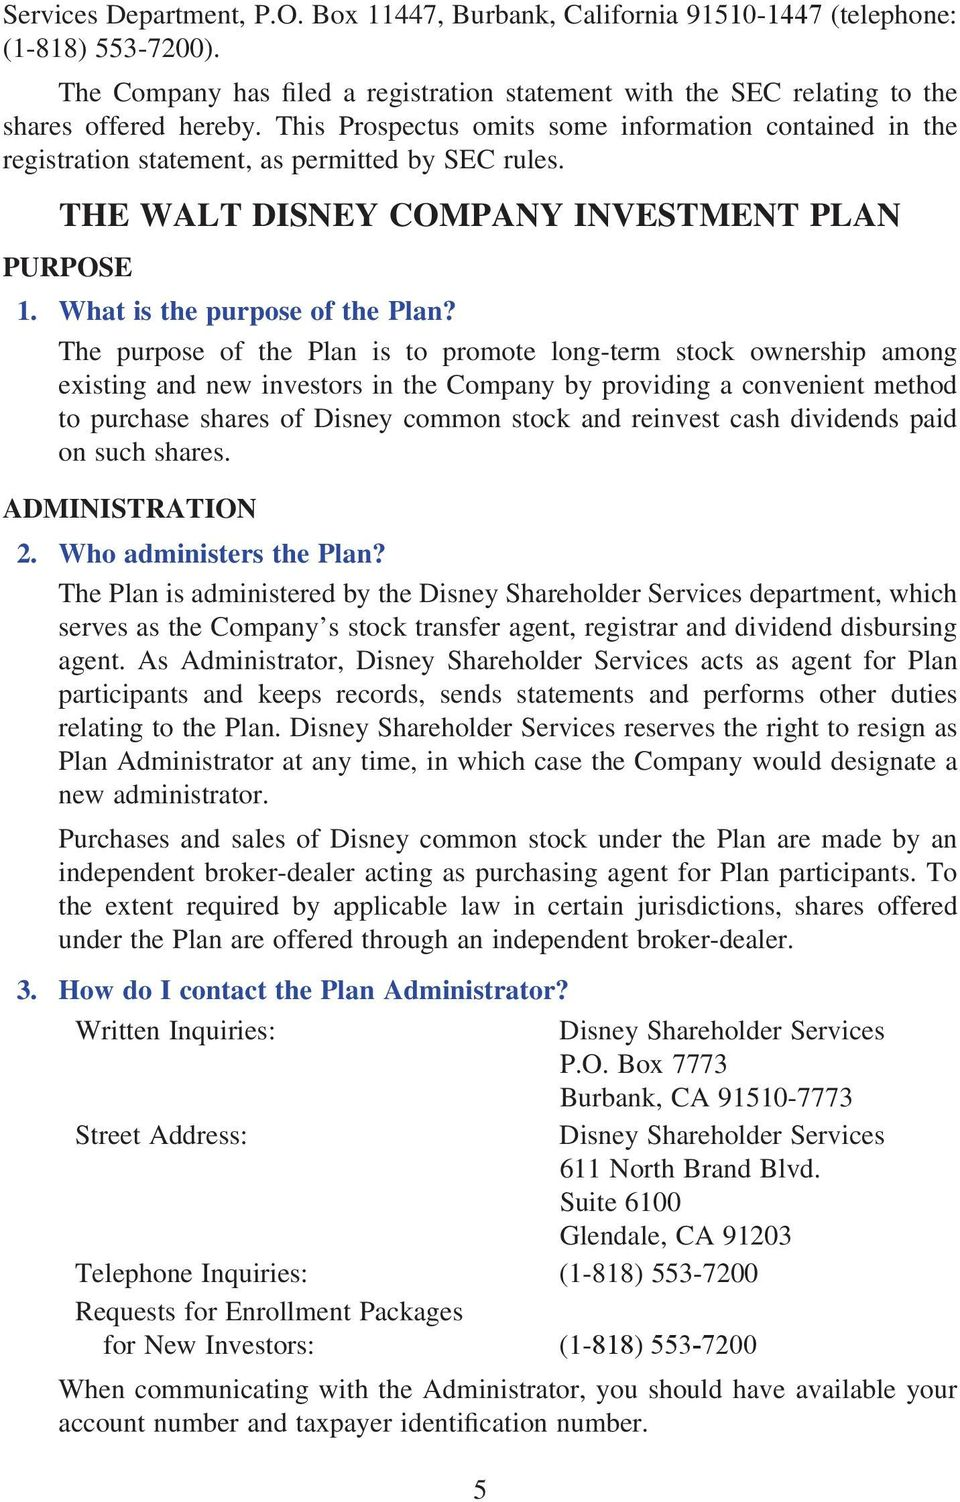 The purpose of the Plan is to promote long-term stock ownership among existing and new investors in the Company by providing a convenient method to purchase shares of Disney common stock and reinvest